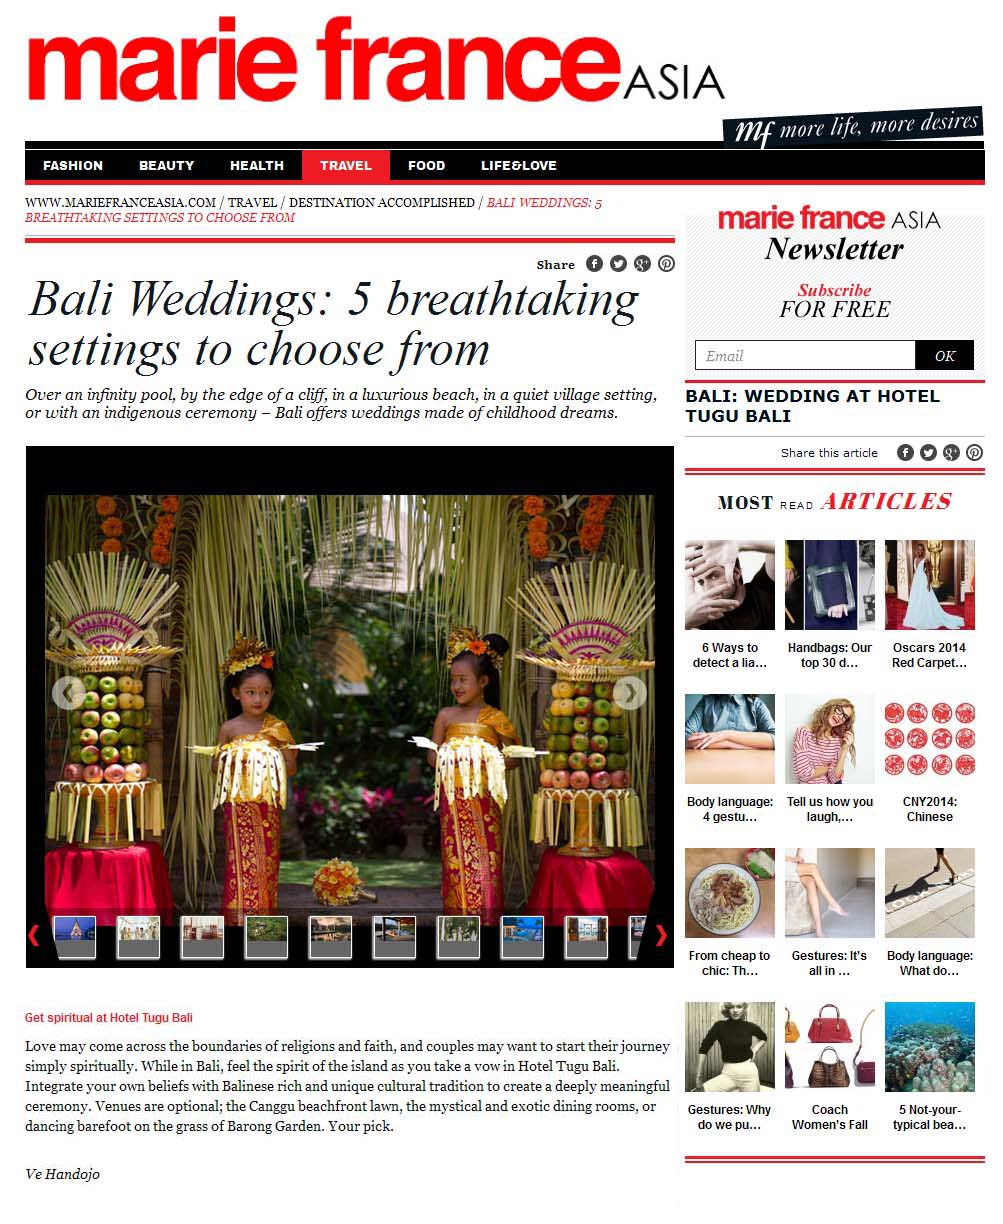 marie france asia: bali weddings - 5 breathaking settings to choose from